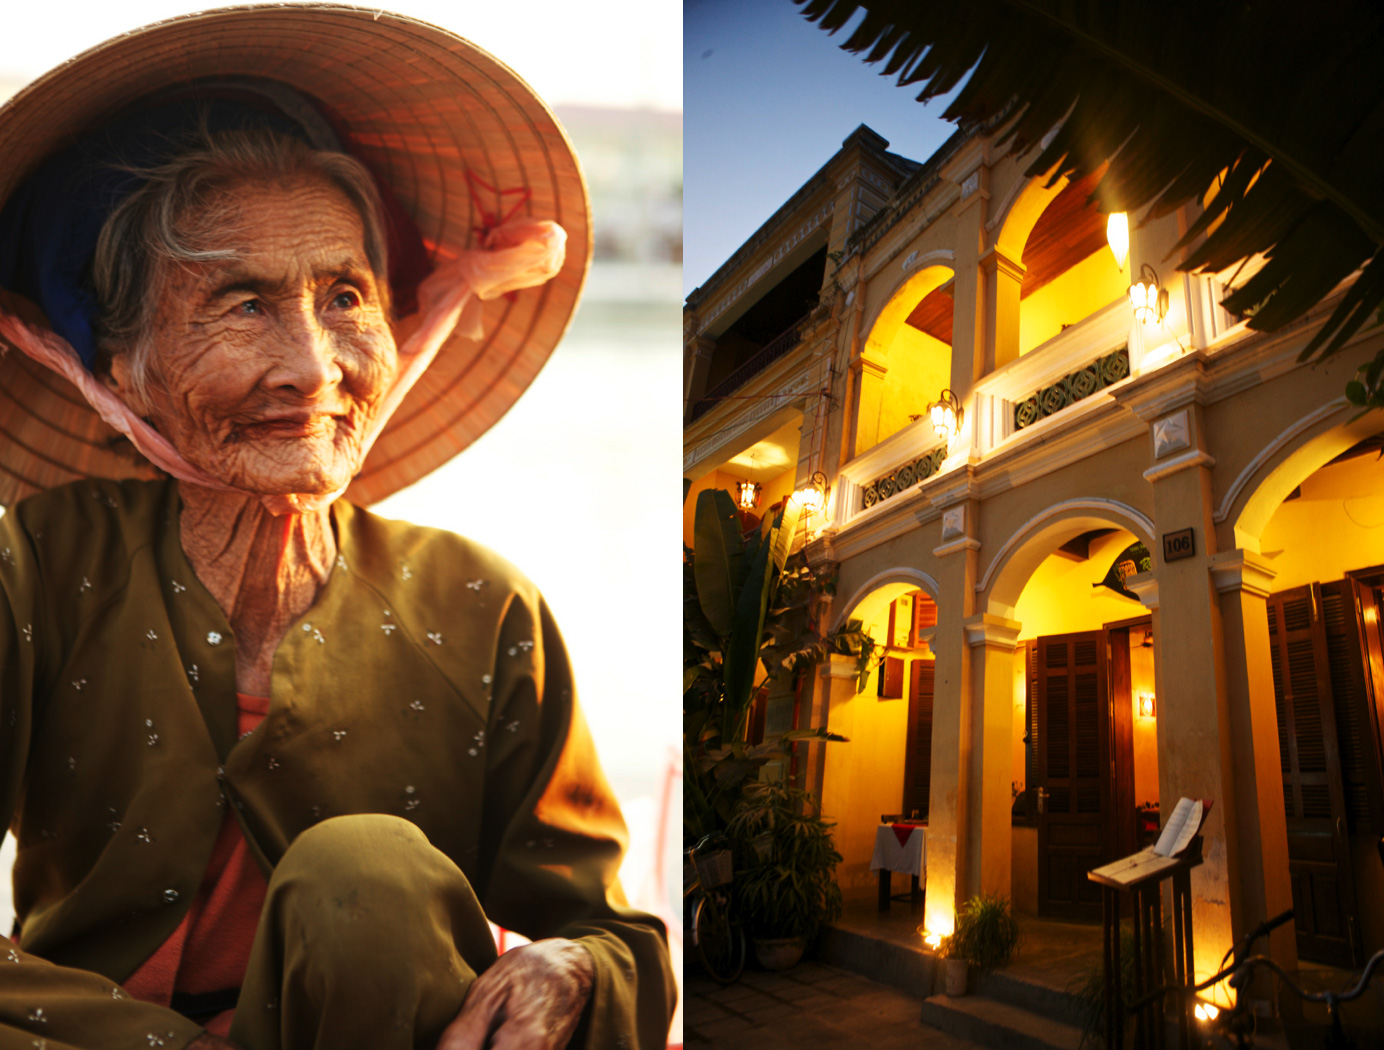 Hoi An Viet Nam street views/Steve Mason Photography